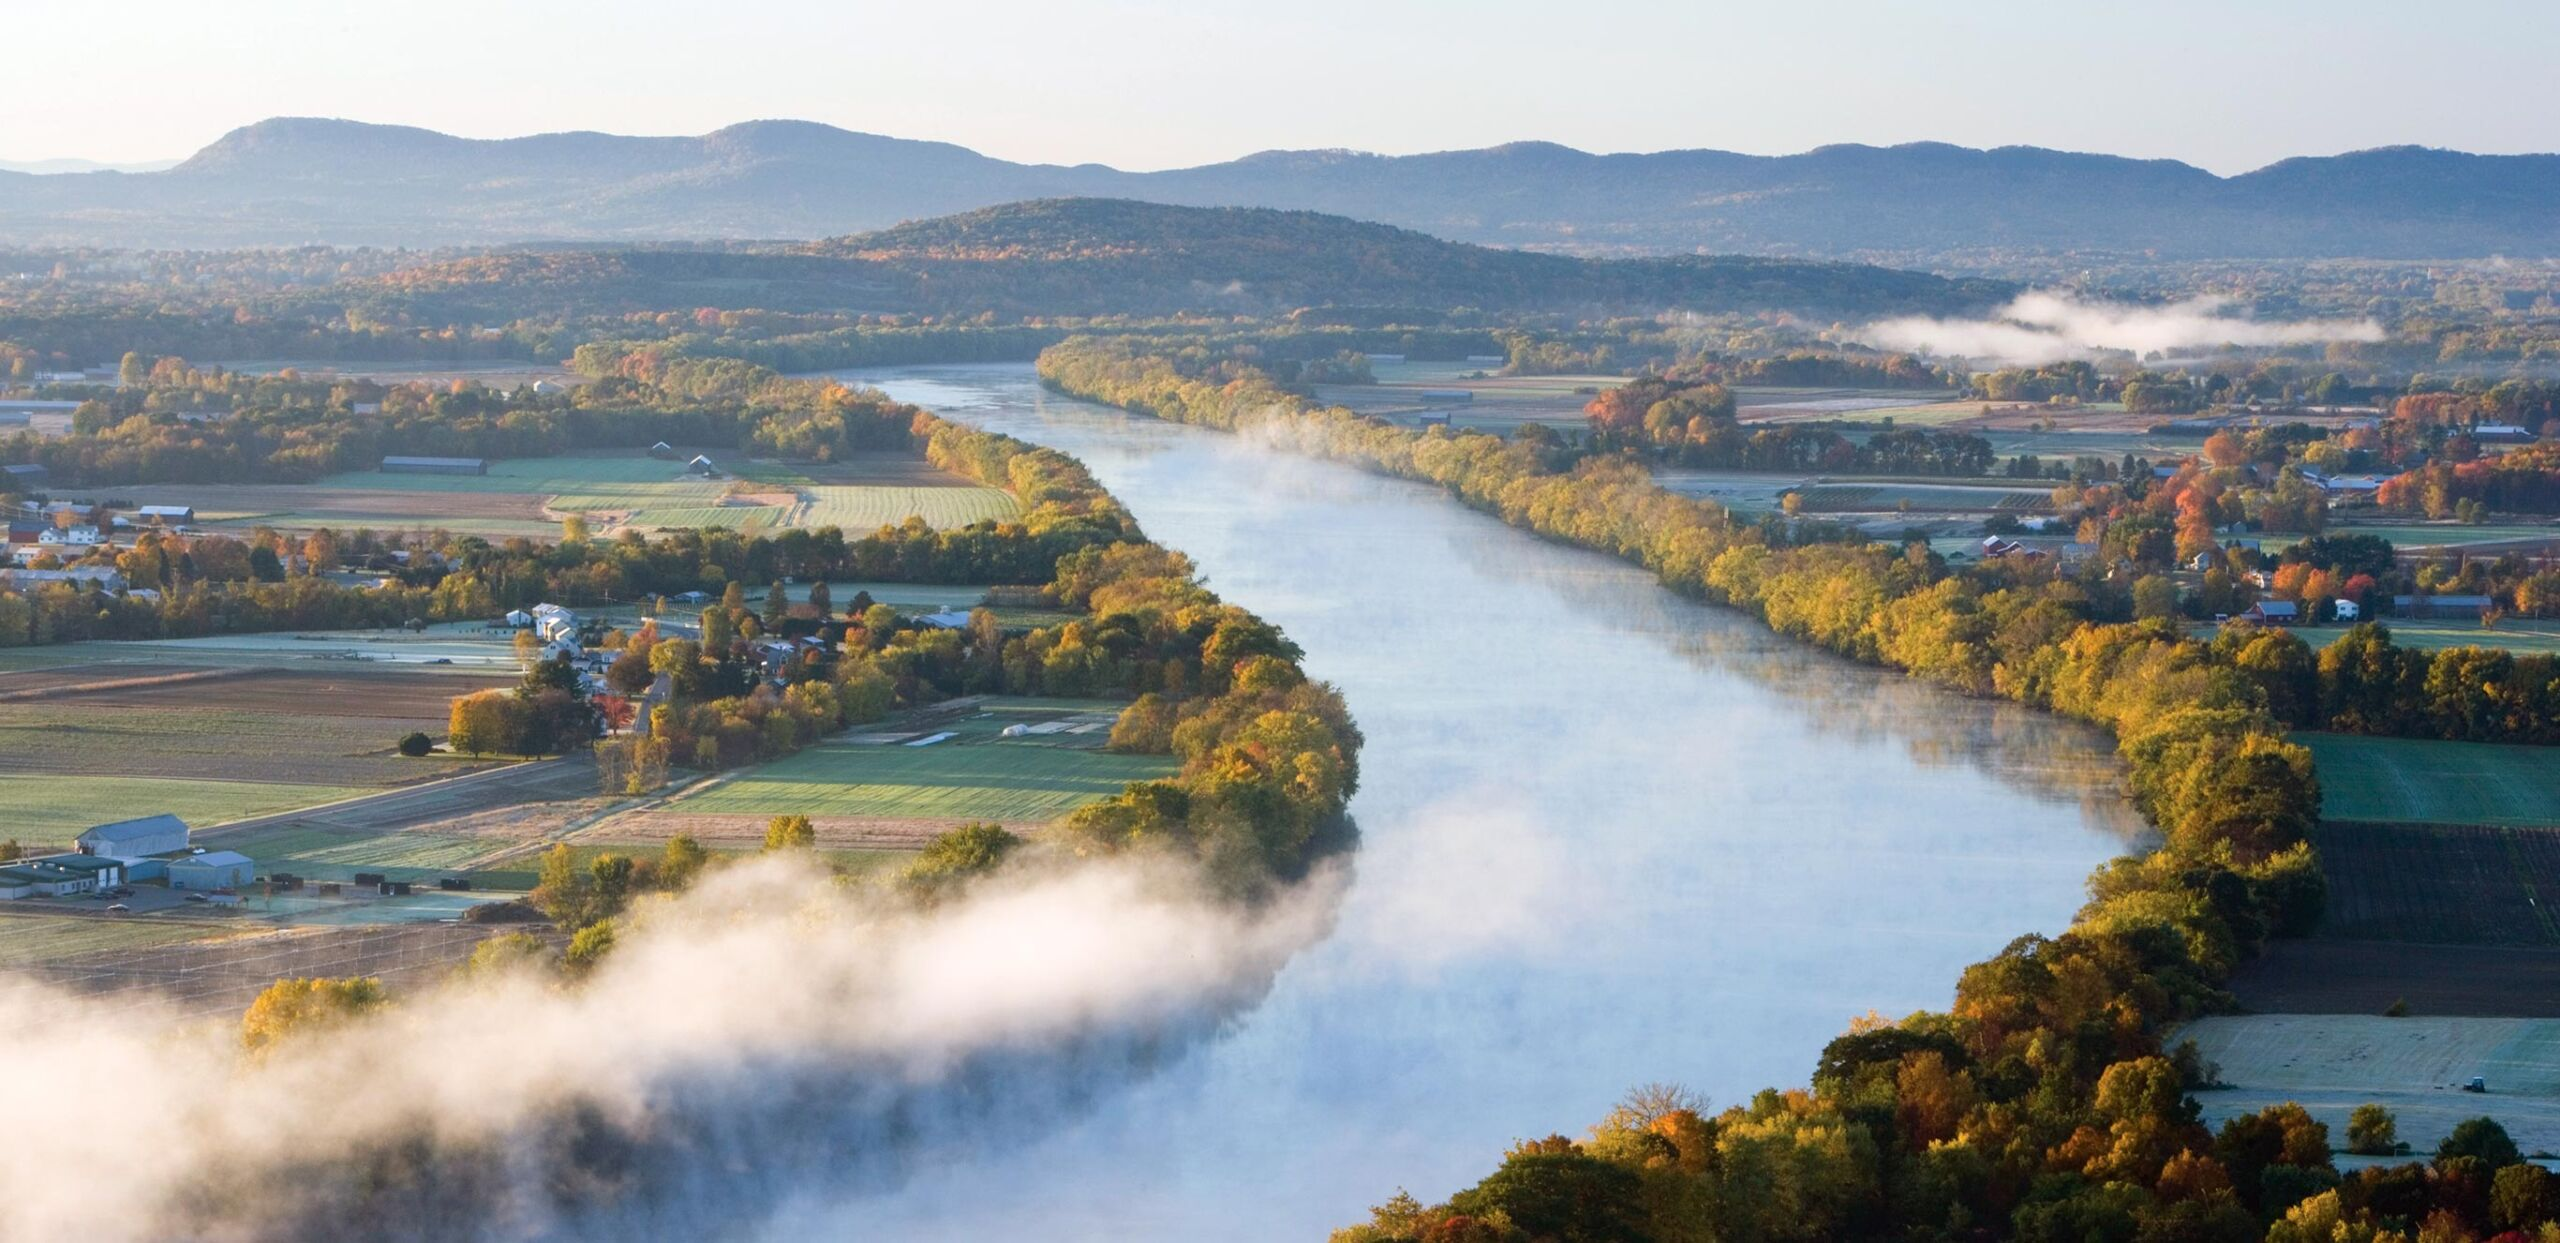 Scenic view of Connecticut River and Pioneer Valley, Cooley Dickinson Health Care System, Northampton, MA 01060.